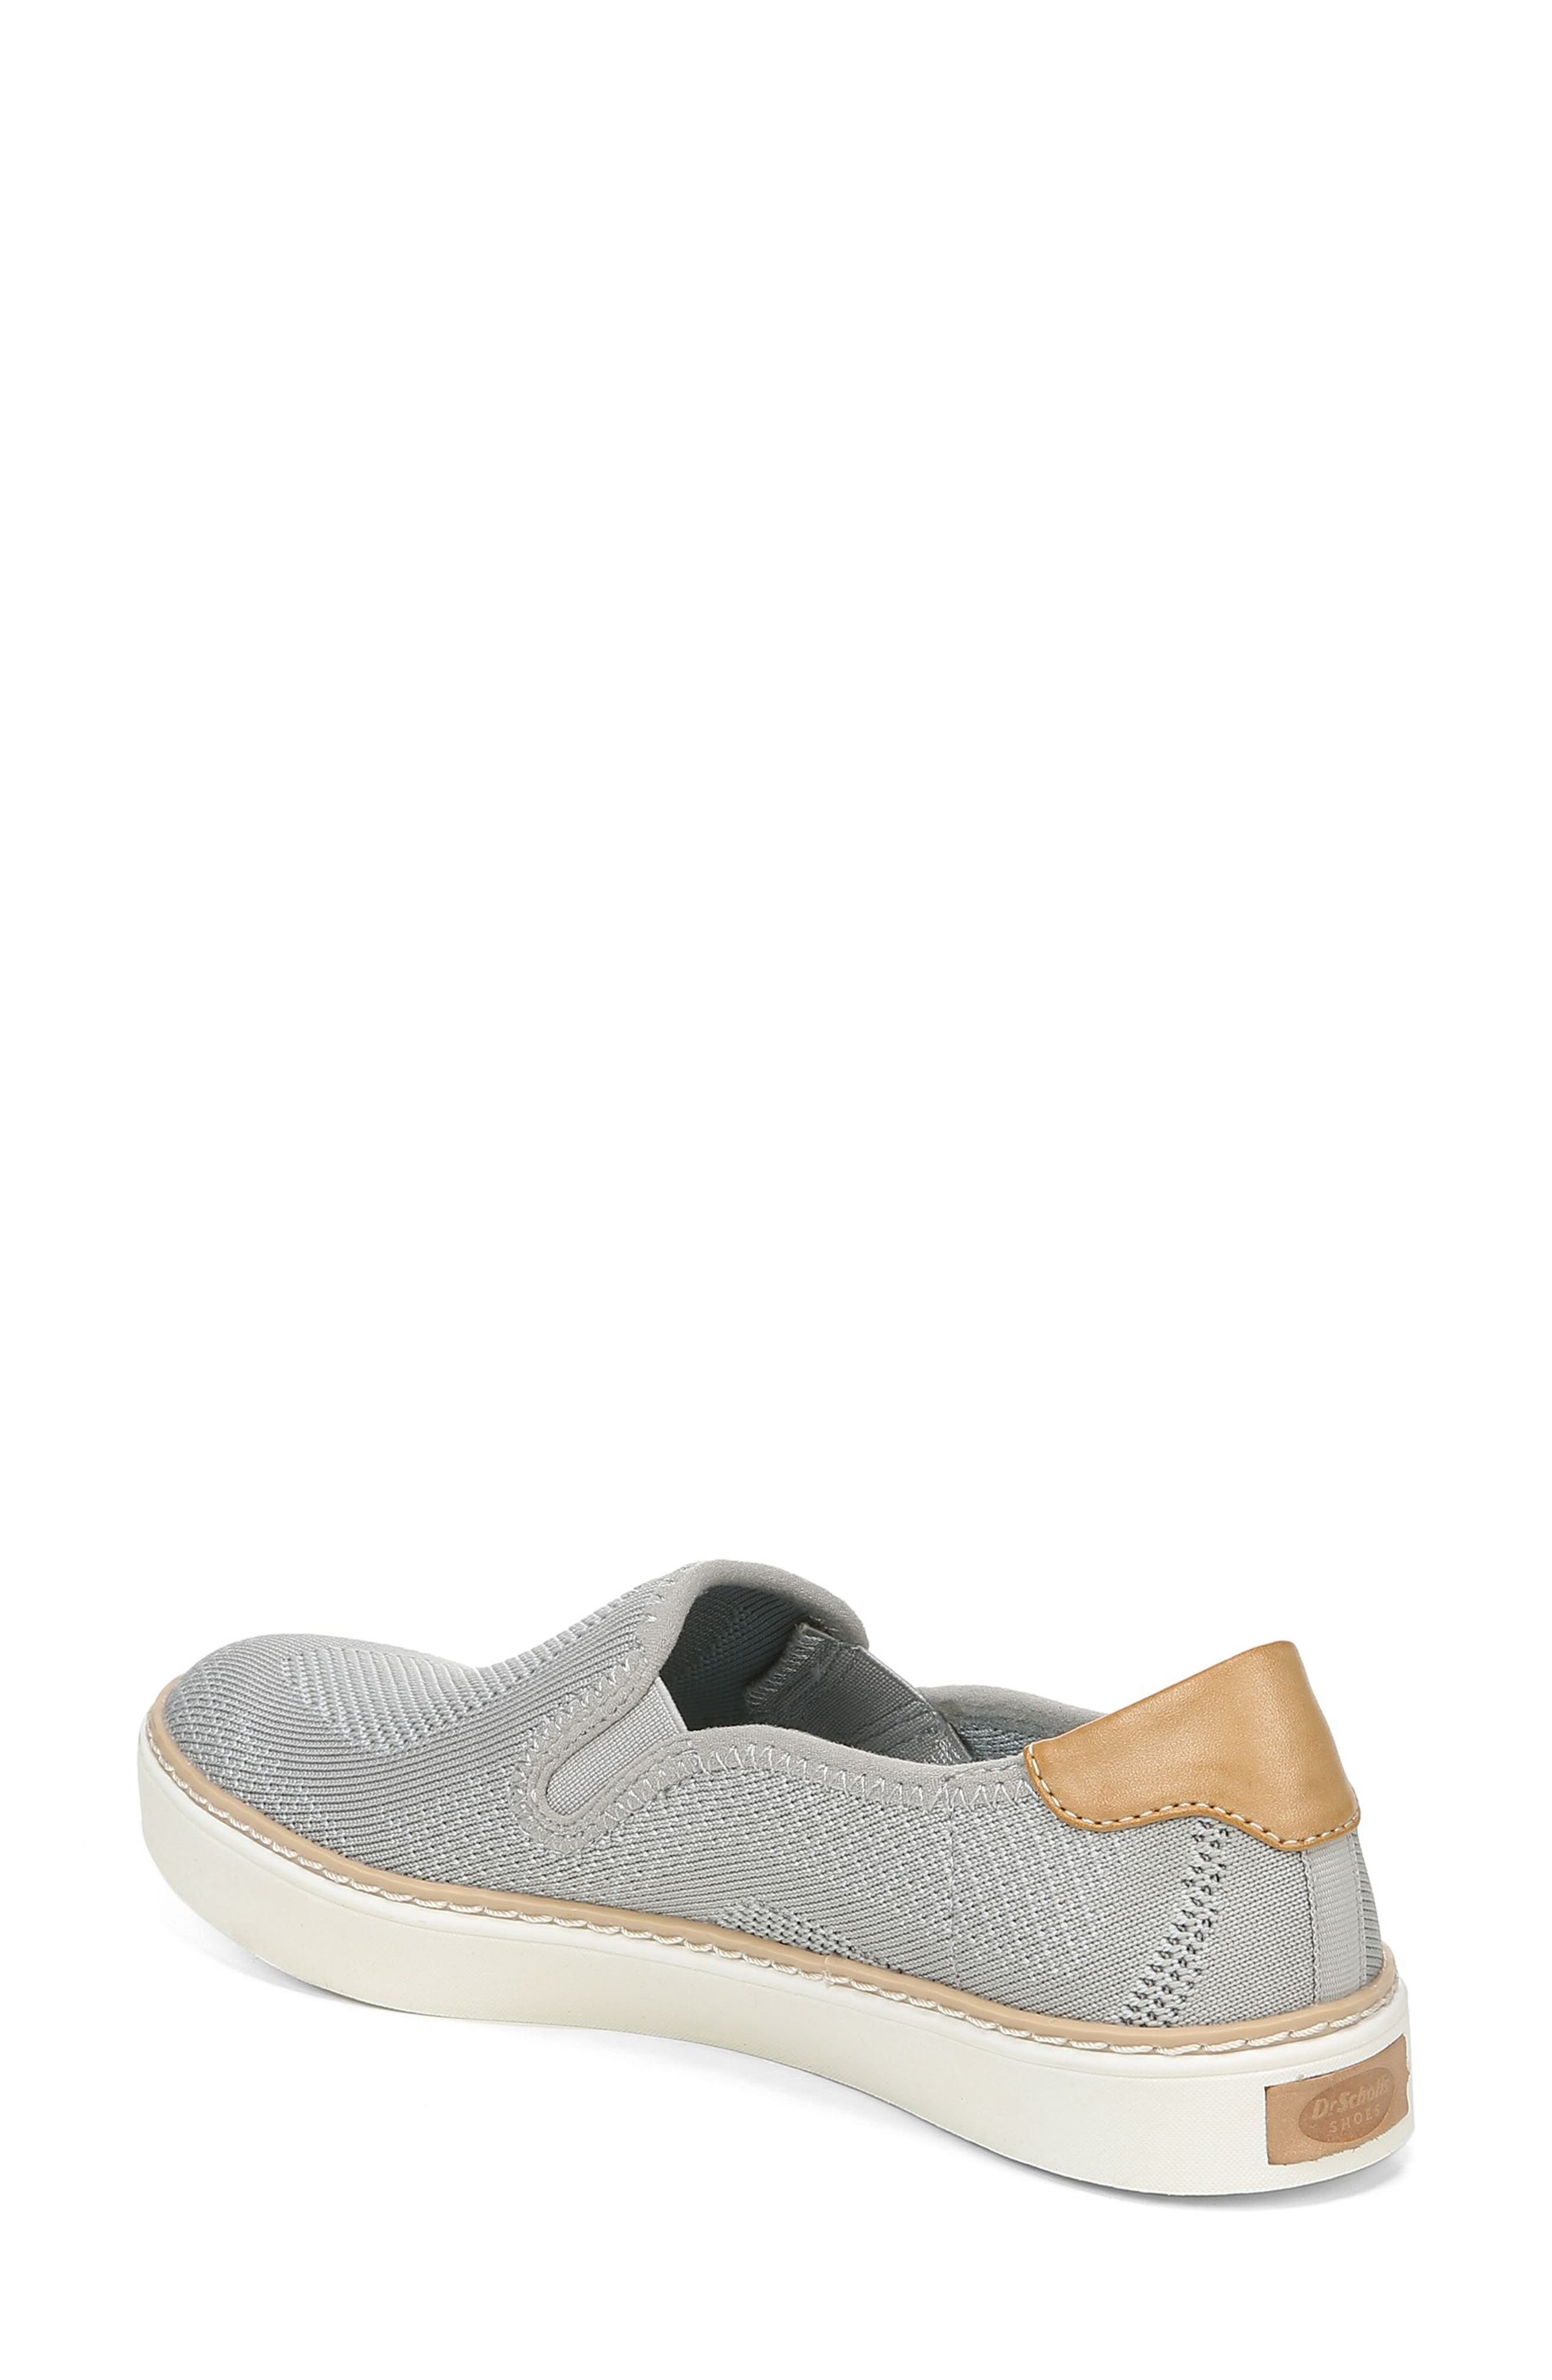 ,                             Madi Slip-On Sneaker,                             Alternate thumbnail 2, color,                             GREY KNIT FABRIC